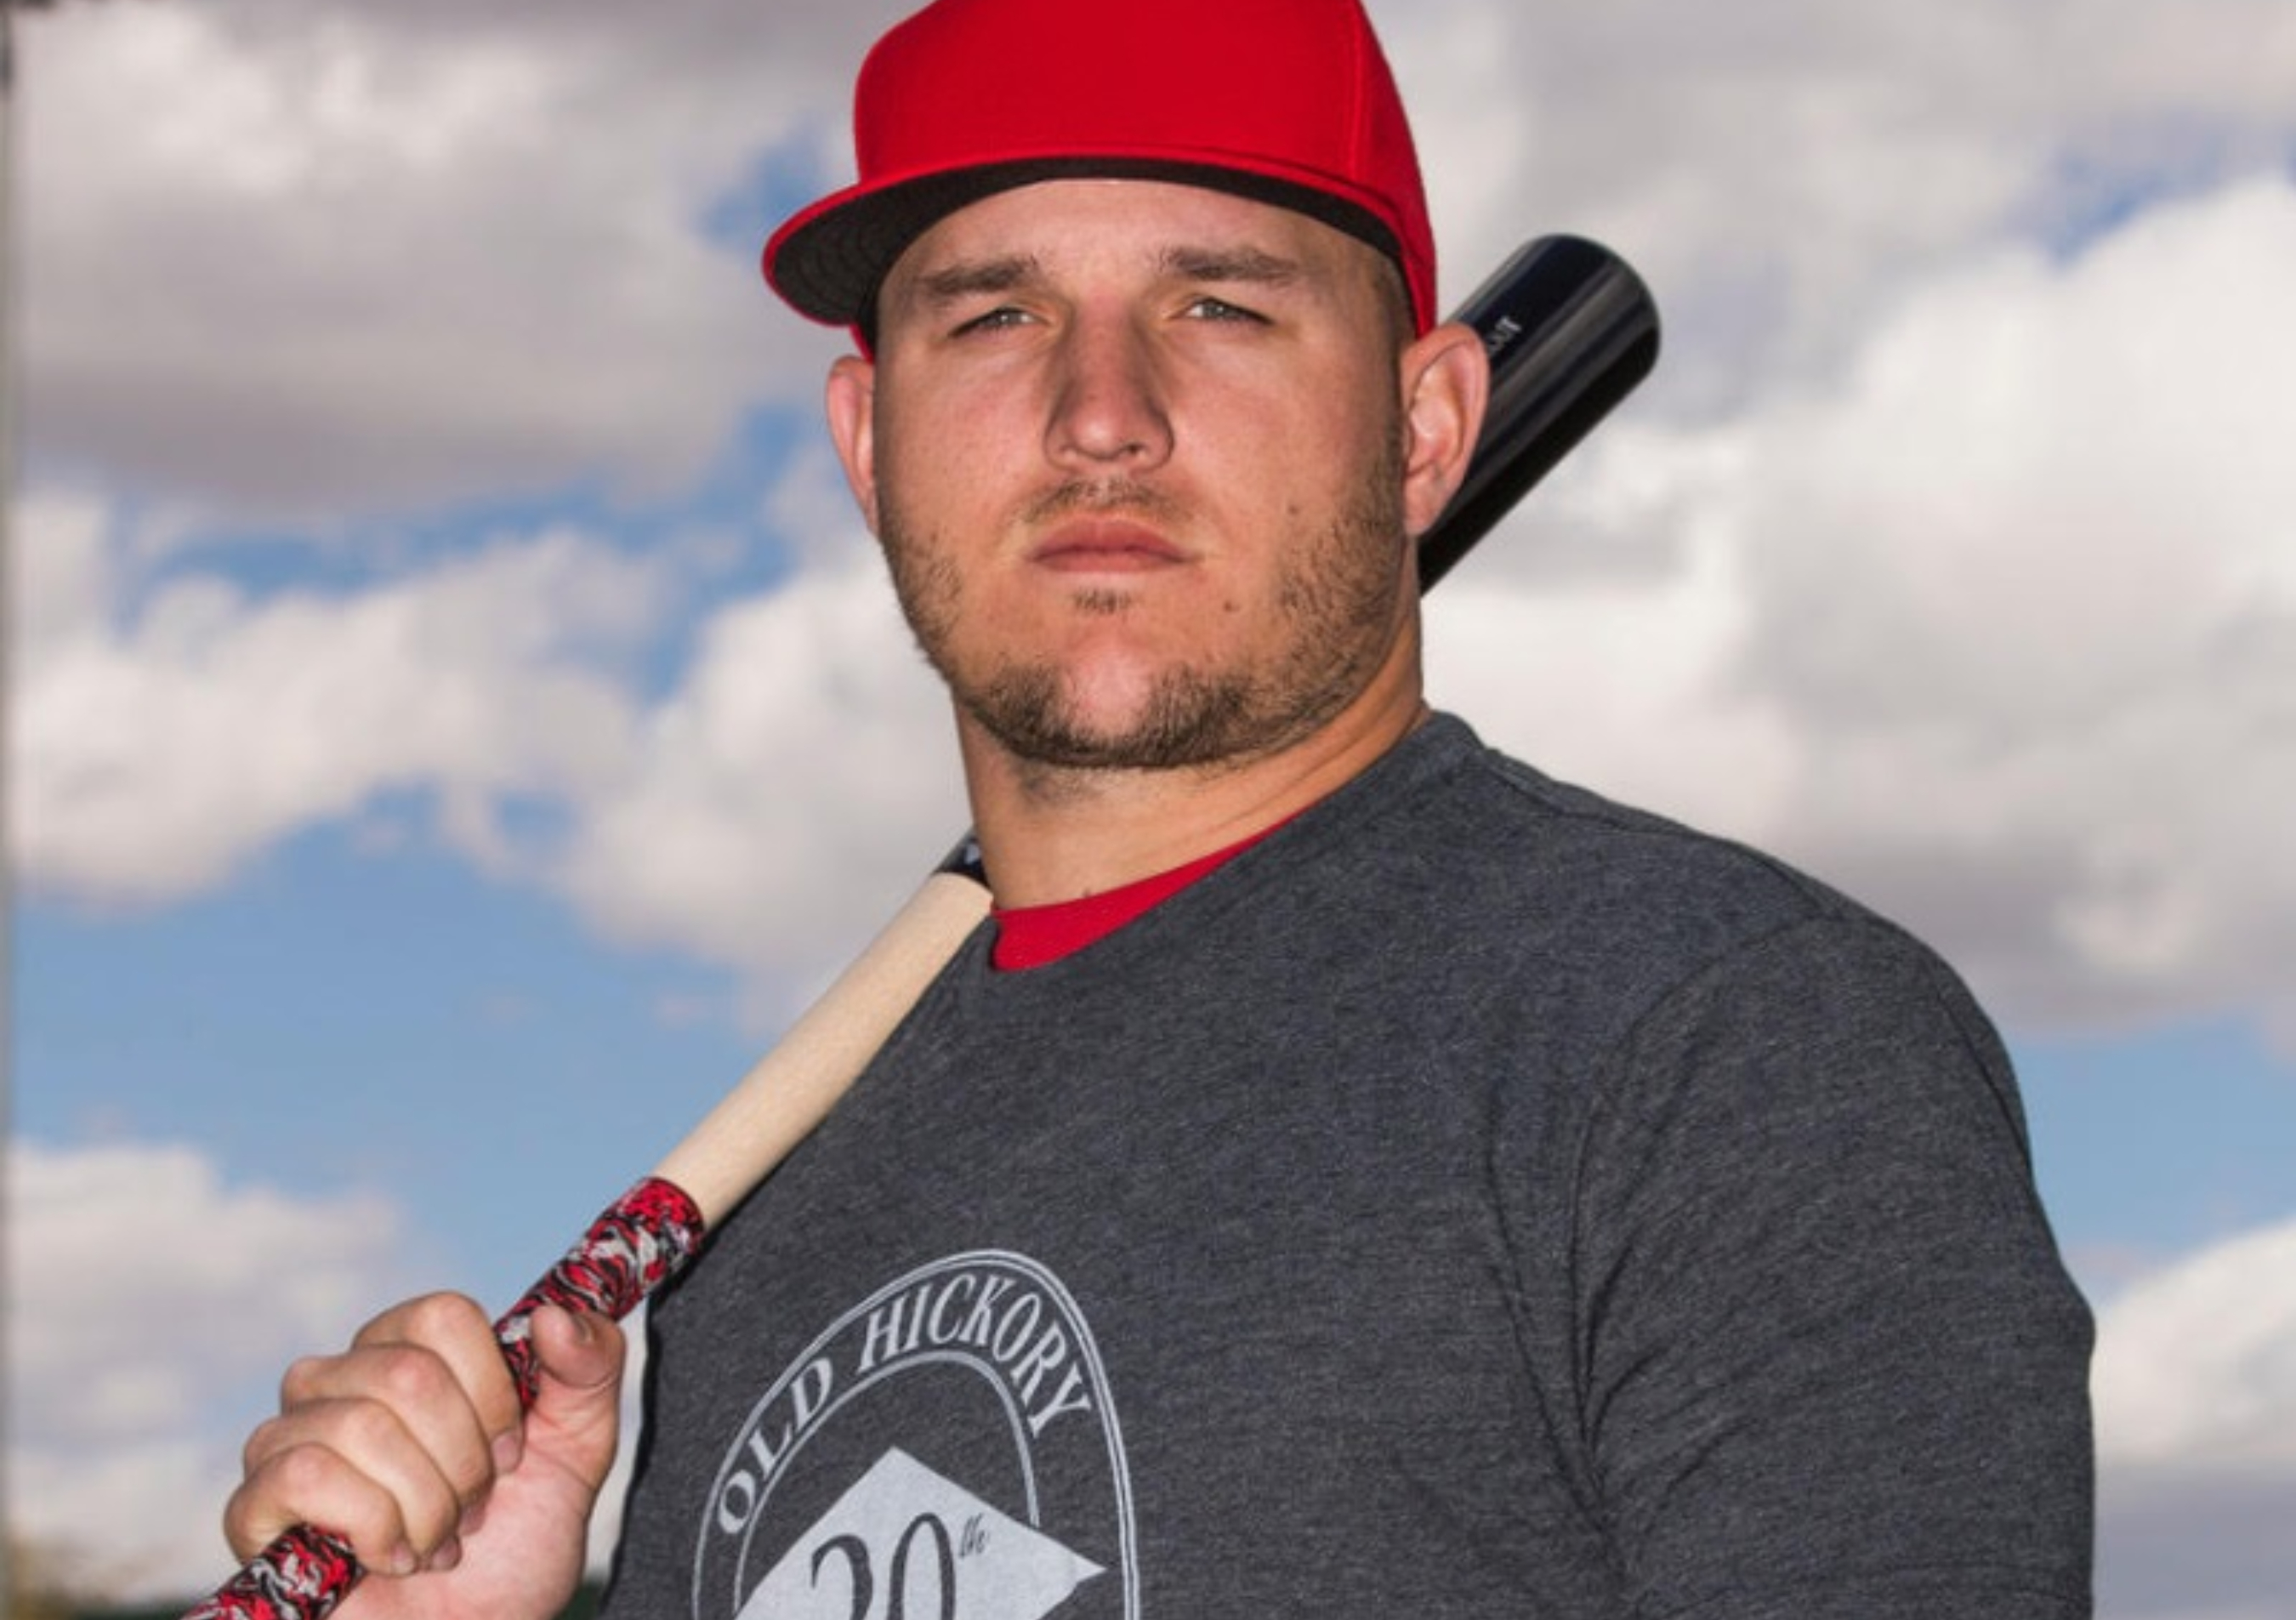 Mike-trout-old-hickory